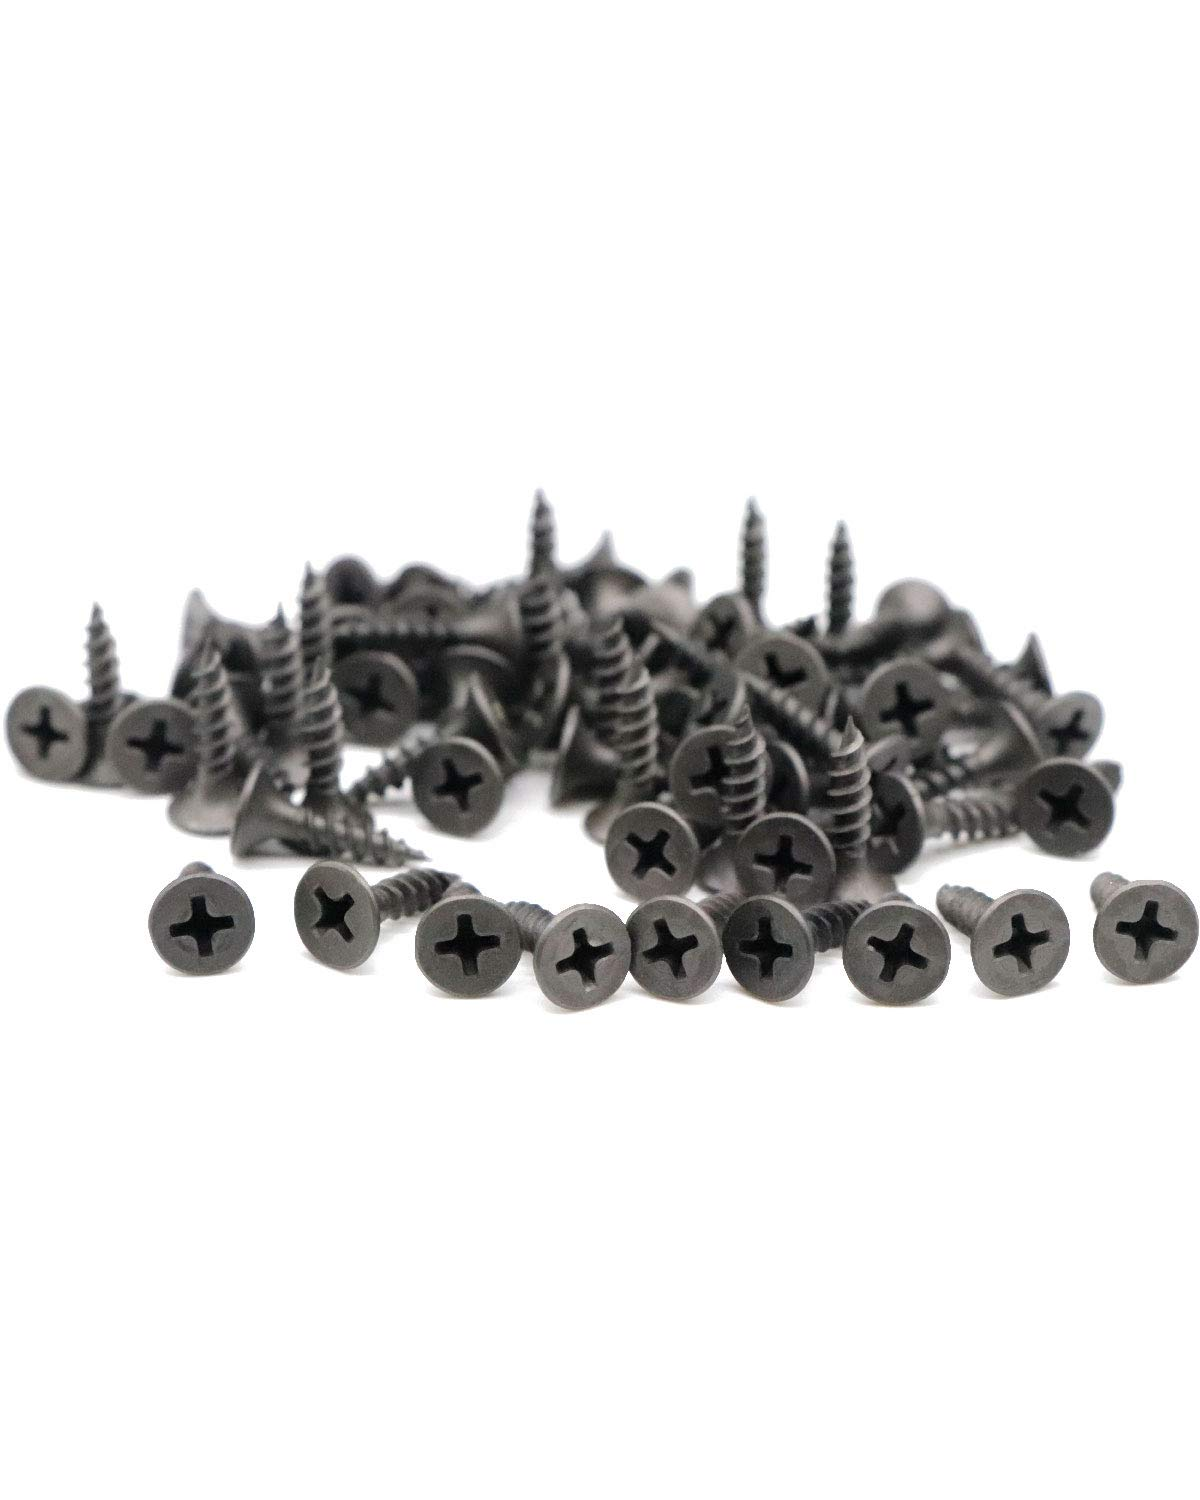 Flat Head Phillips Drywall Screws 6# X 5//8 inches,250pcs,Fine Thread Sharp Point Wood Screw Carbon Steel 1022A Gray Phosphate